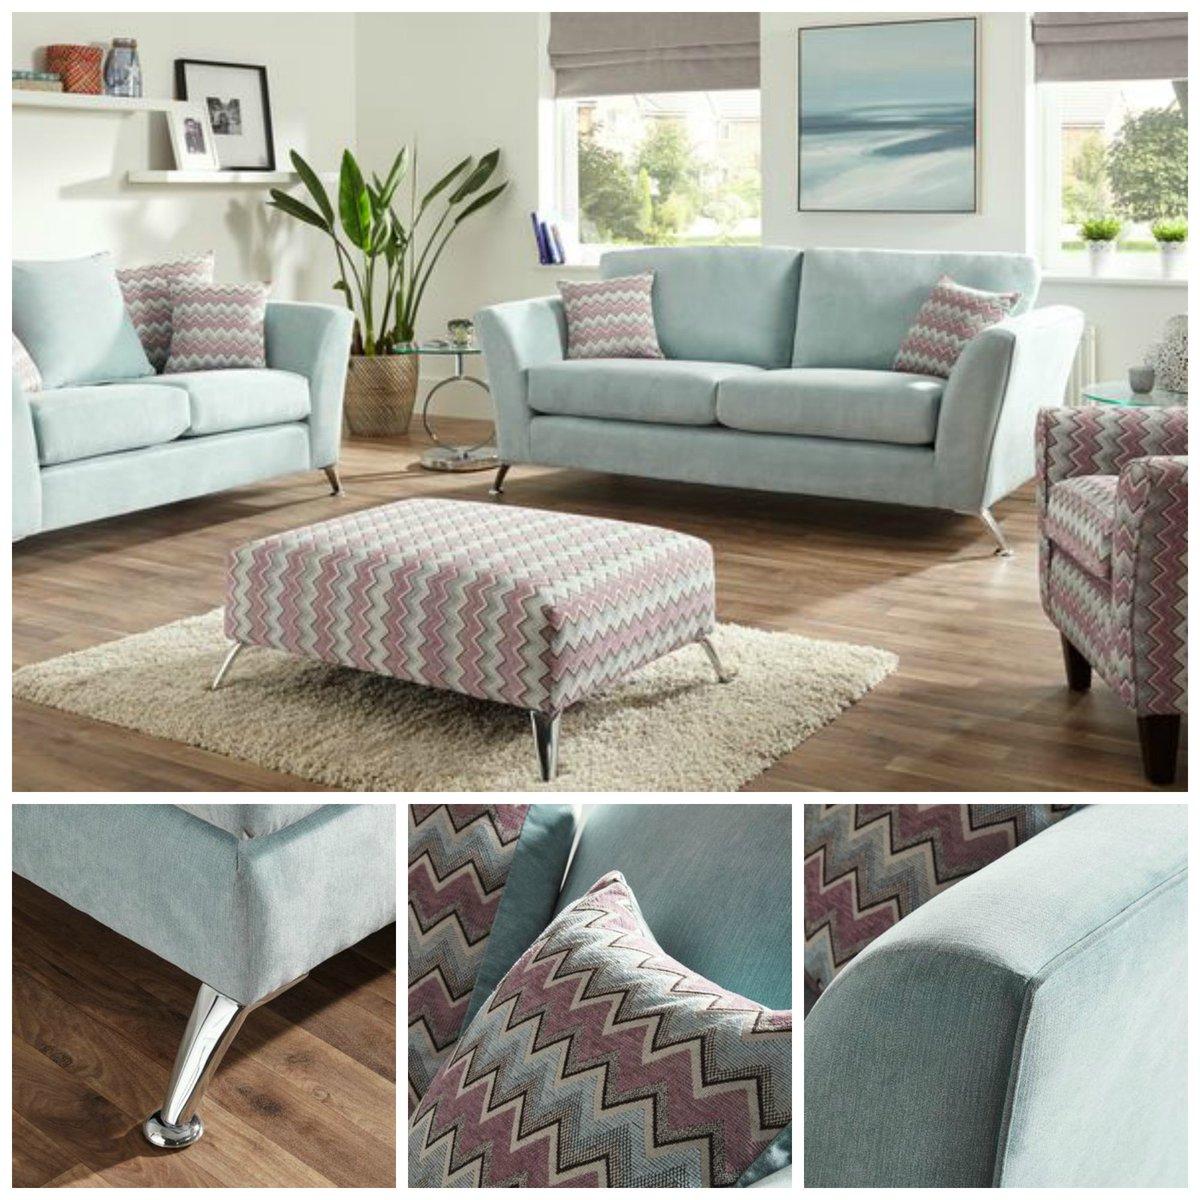 Scs Sofas On Twitter Extended Til Sunday This Jamesy 3 Seater Sofa Is Available From 6 23 Per Month With 4 Years Free Credit Https T Co 3ivcaqp9pq